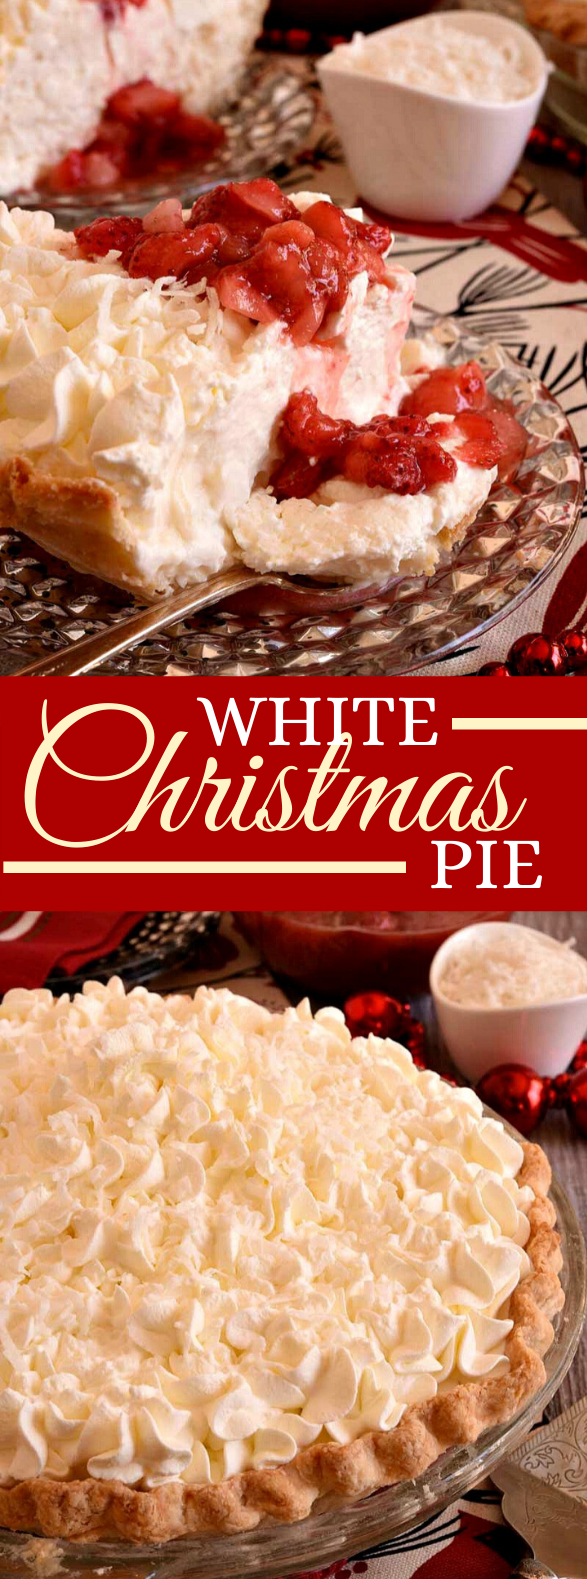 White Christmas Pie #desserts #tarts